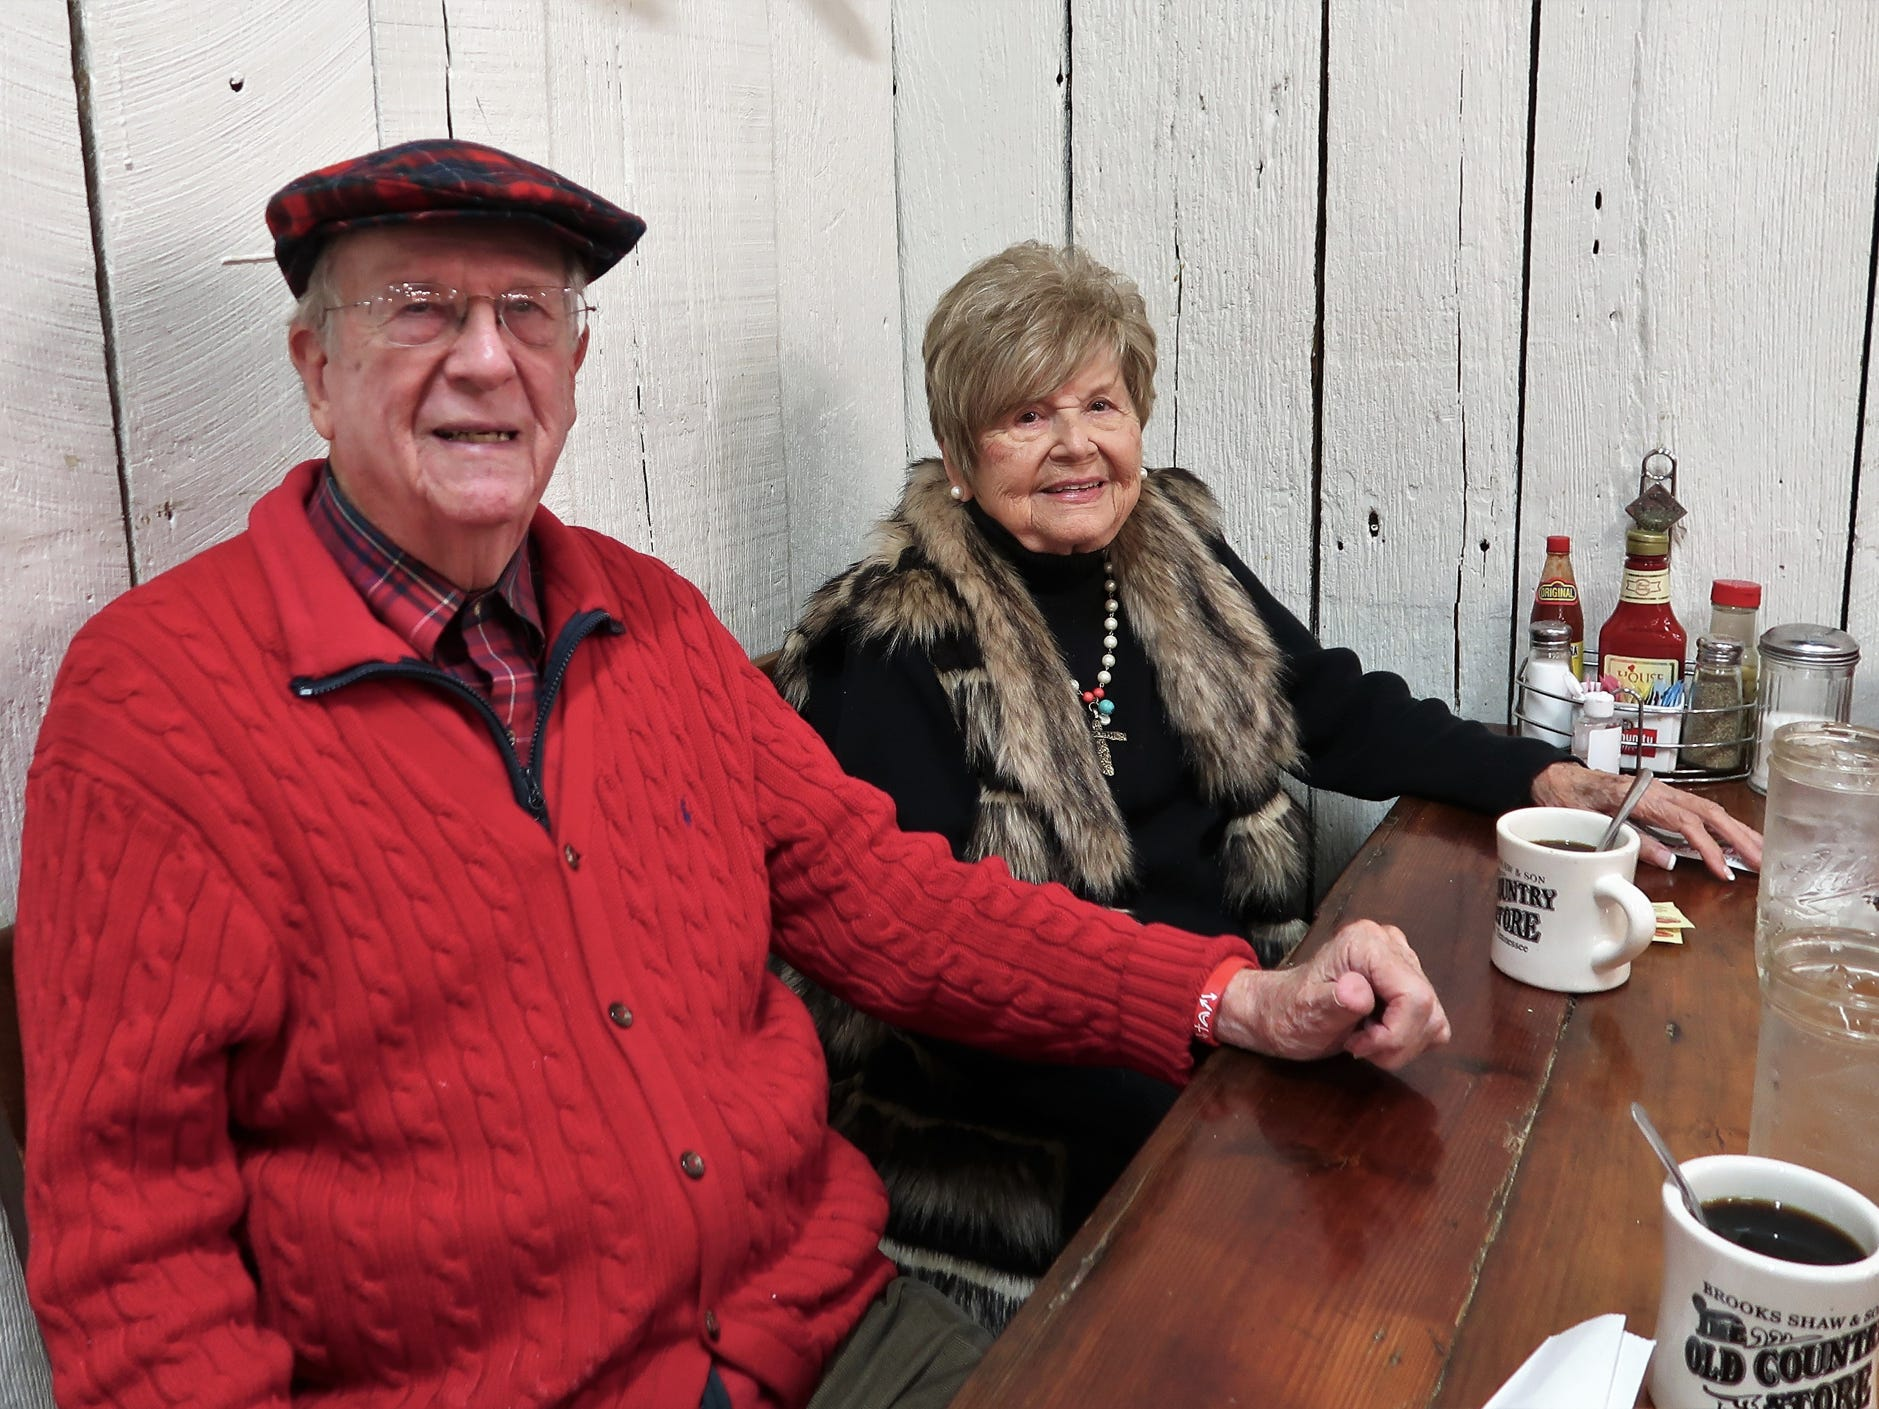 The Brooks Shaw Old Country Store hosted the 34th Annual Christmas Eve Breakfast on Monday, December 24, 2018.  The event is held each year to thank customers for their patronage throughout the year.  The breakfast buffet is offered for $4.99 for adults and $2.99 for children under 12.  The restaurant expected to serve over 2,000 people before early afternoon.